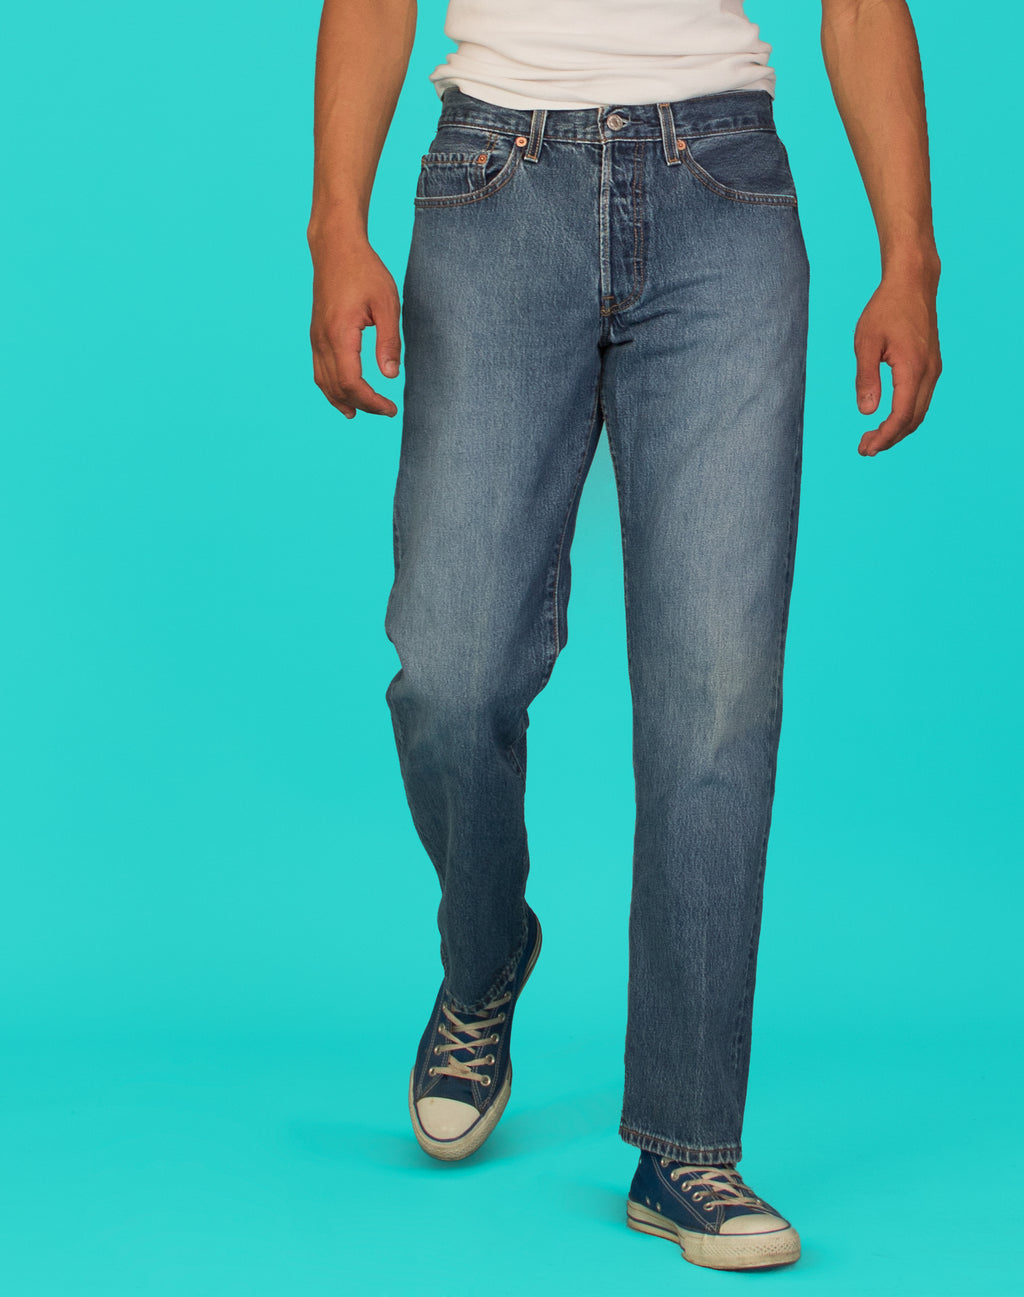 LEVI'S BLUE WASHED 501 JEANS